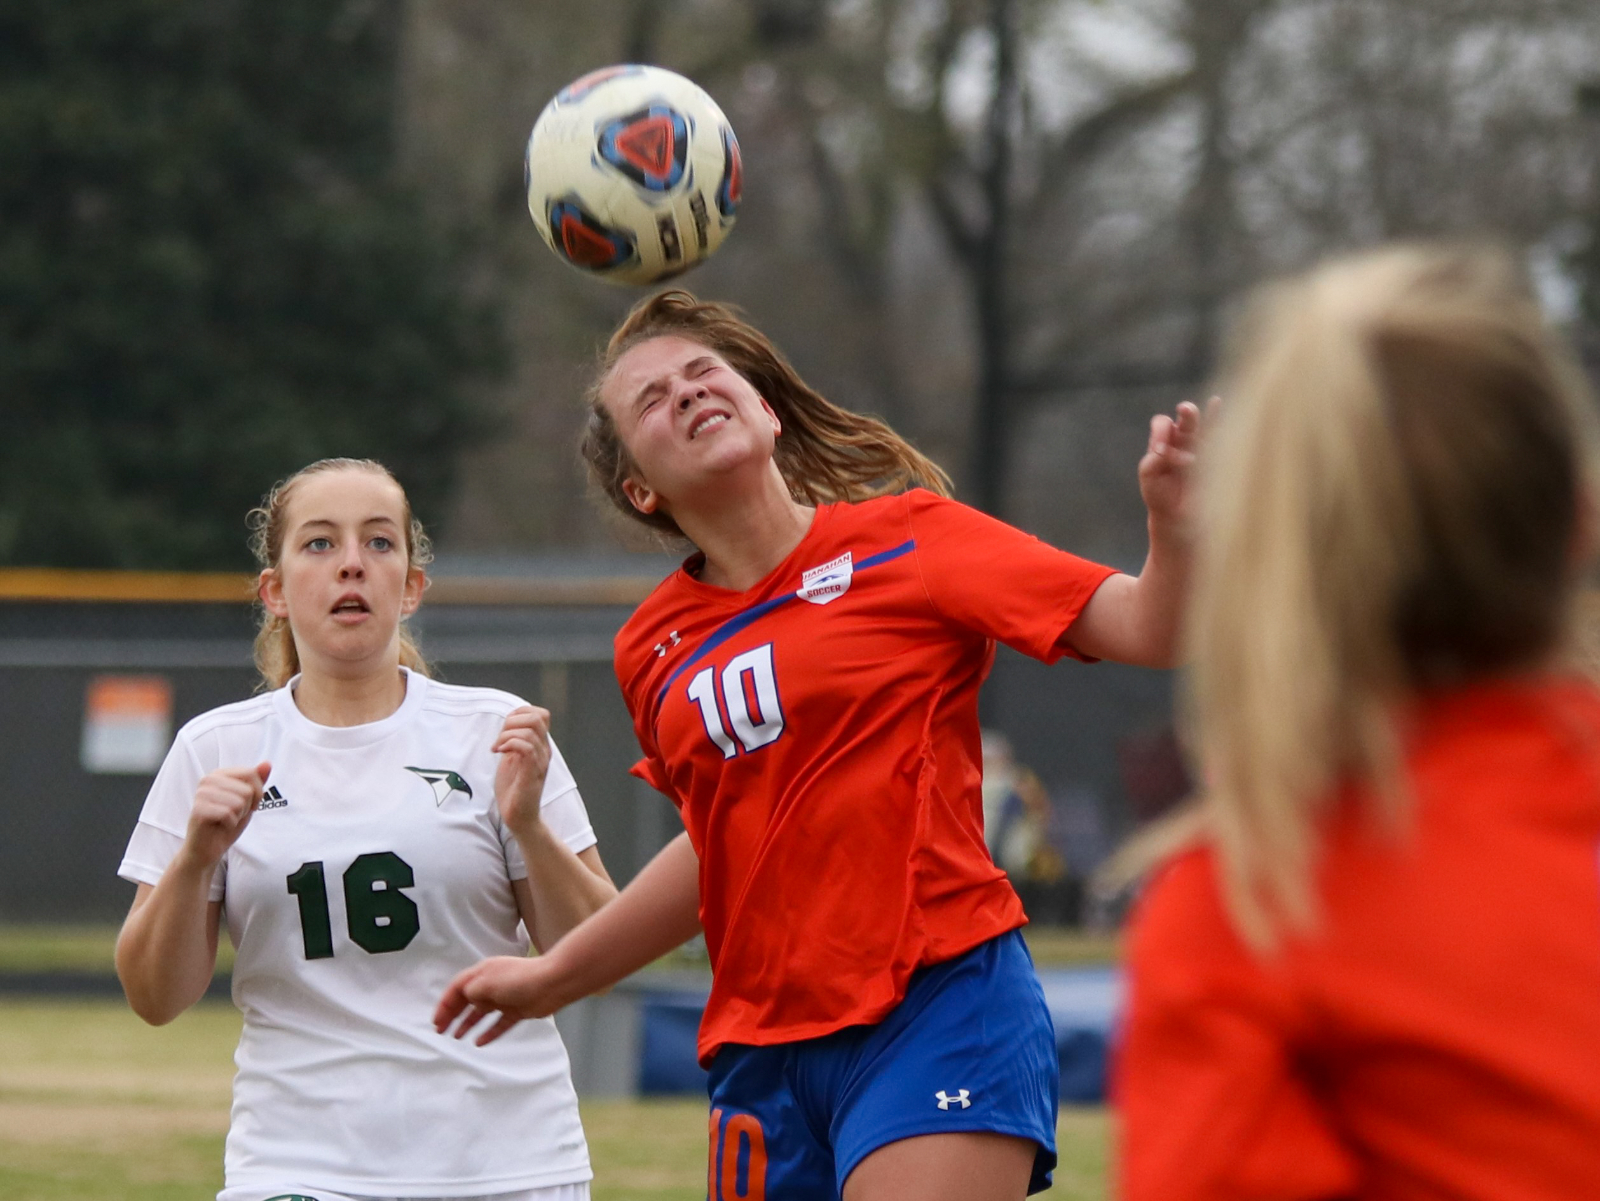 3.16.2021 (PHOTO GALLERY): Hanahan Varsity Girls Soccer vs Academic Magnet HS – Photos by Cyril Samonte